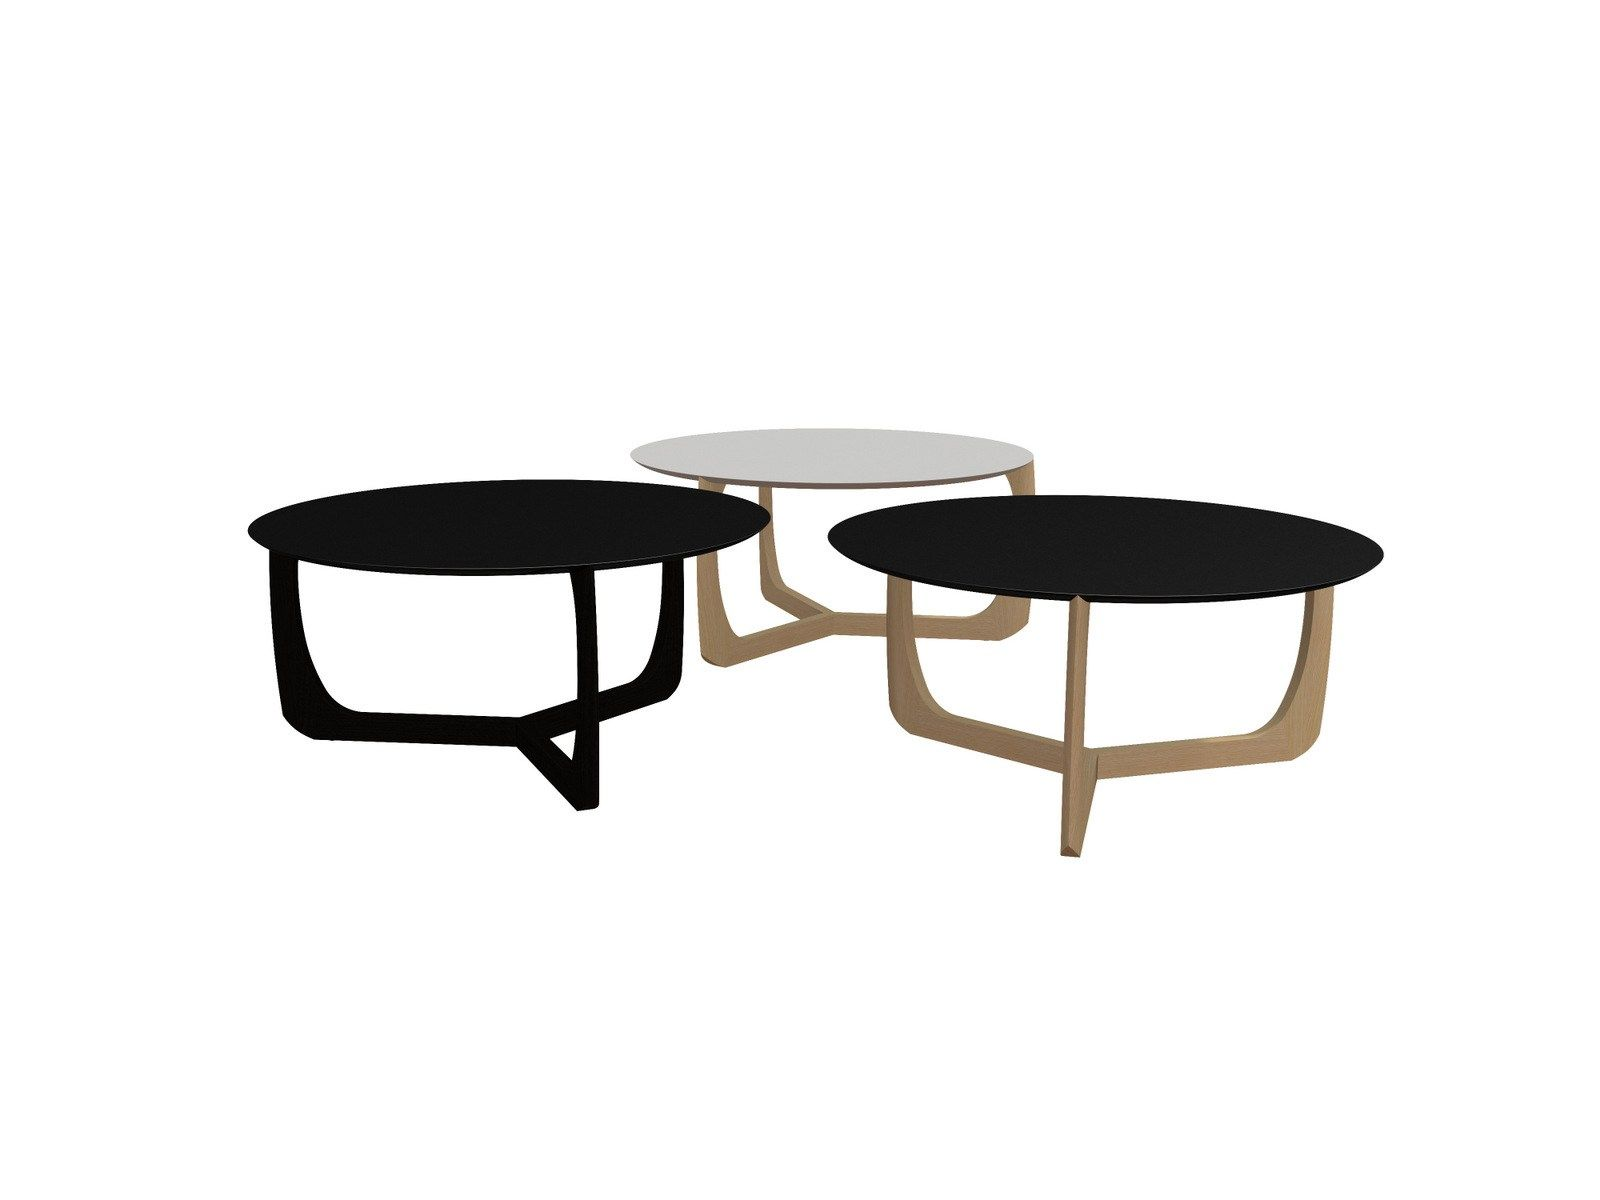 LOW ROUND COFFEE TABLE LILI BY ADDINTERIOR